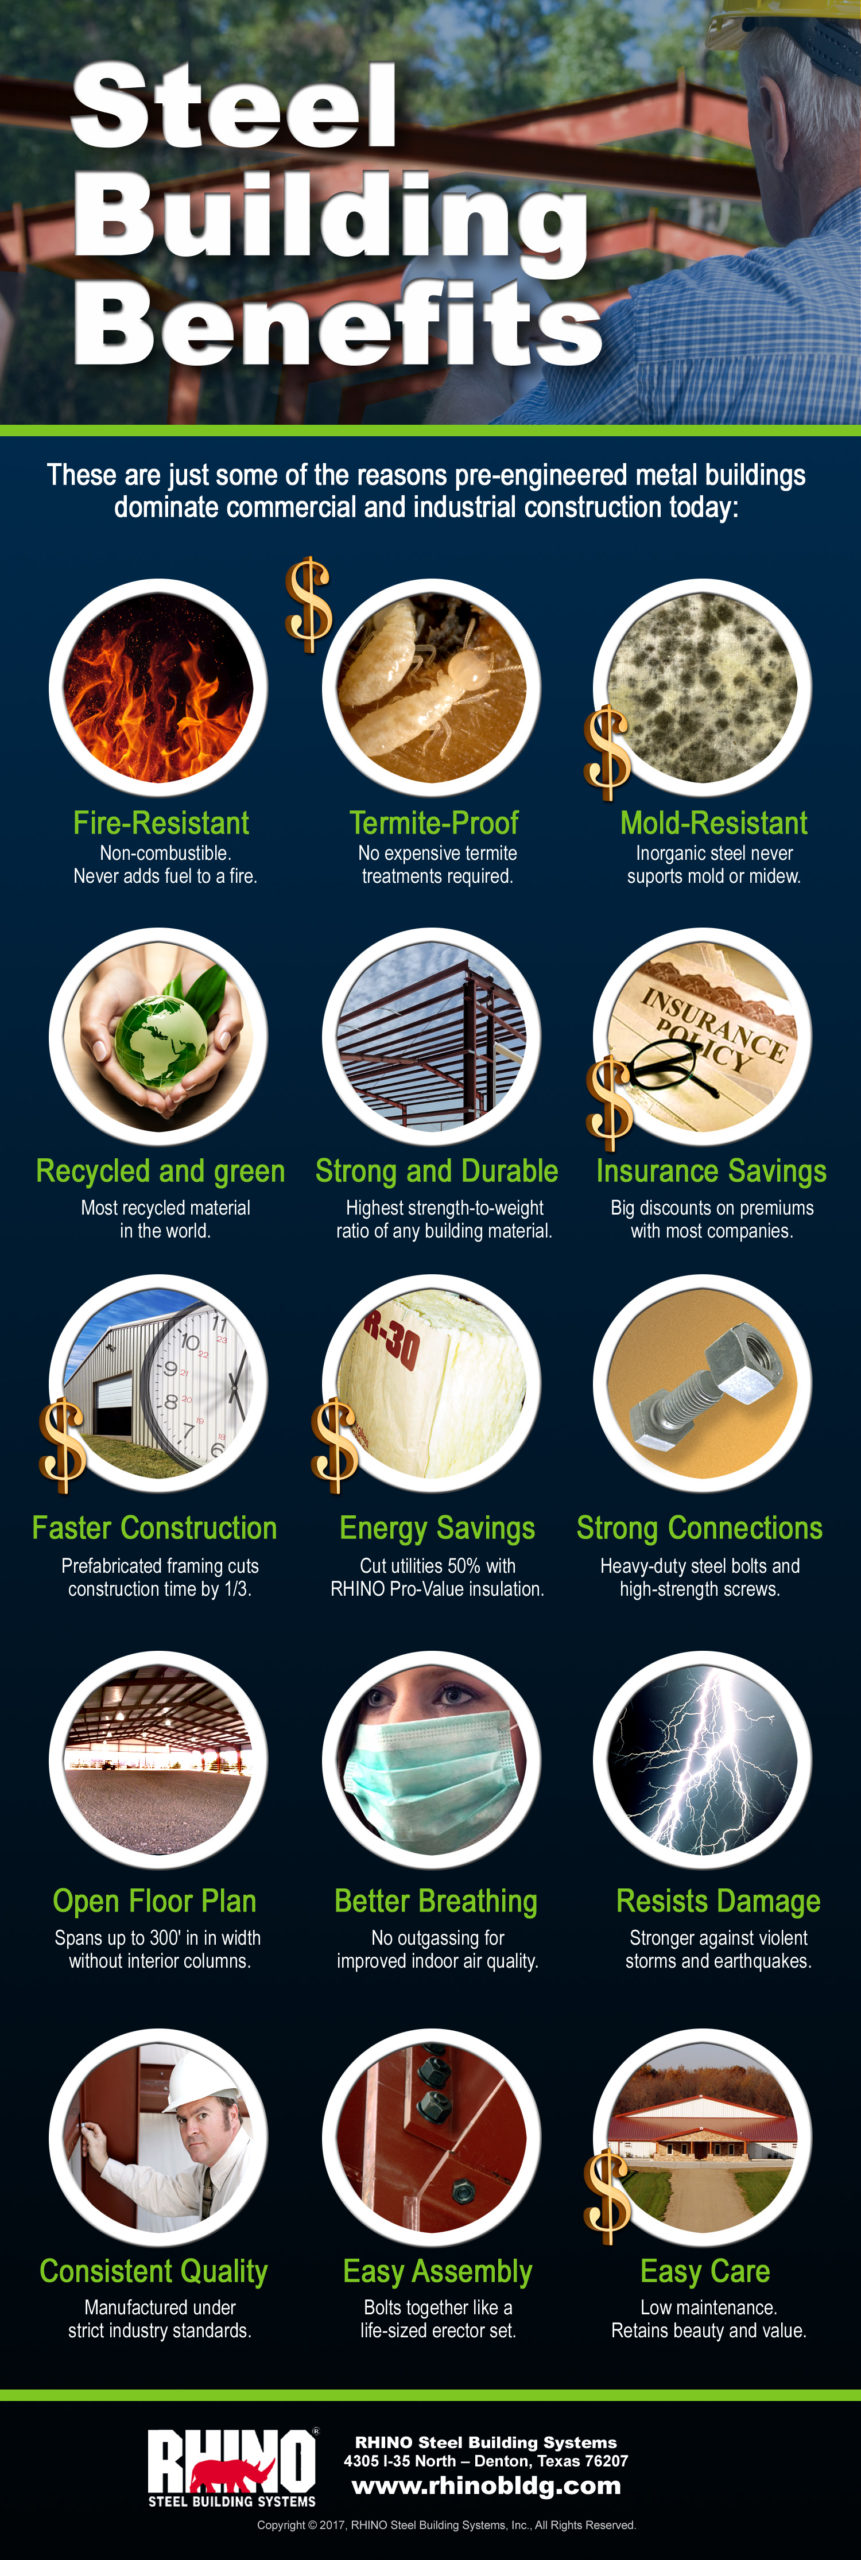 Inforgraphic detailing the steel building benefits provided by the RHINO building system.